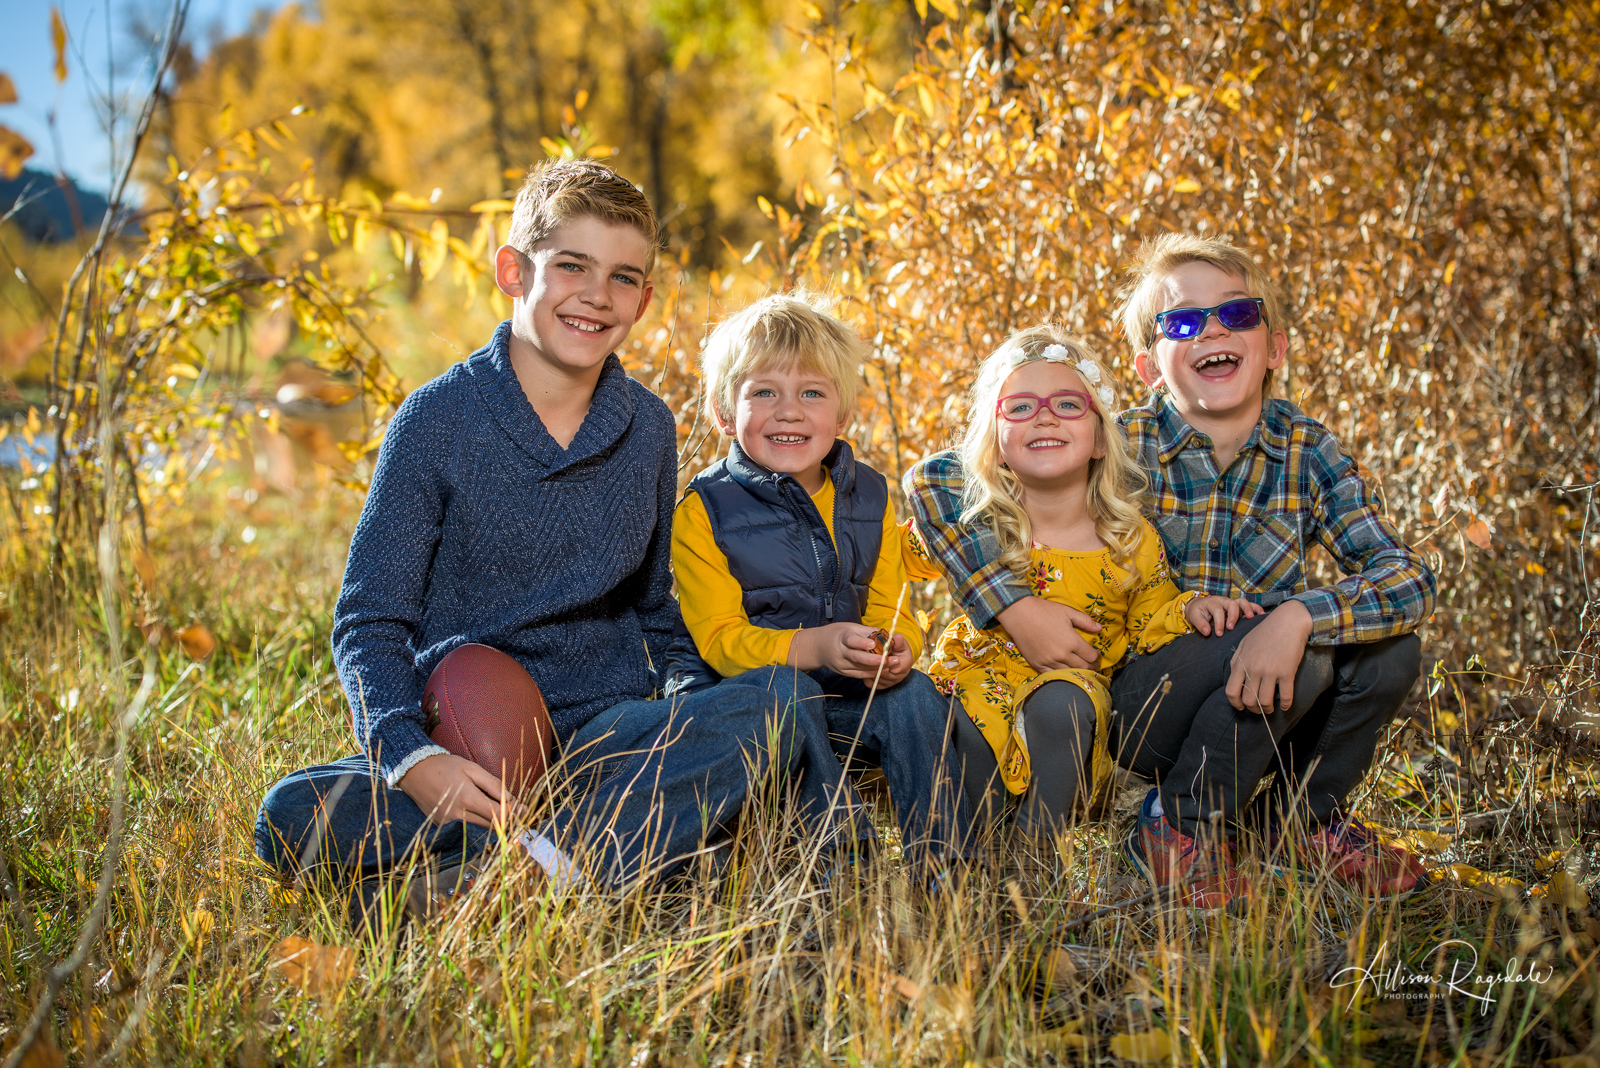 Fall Portraits by Allison Ragsdale Photography